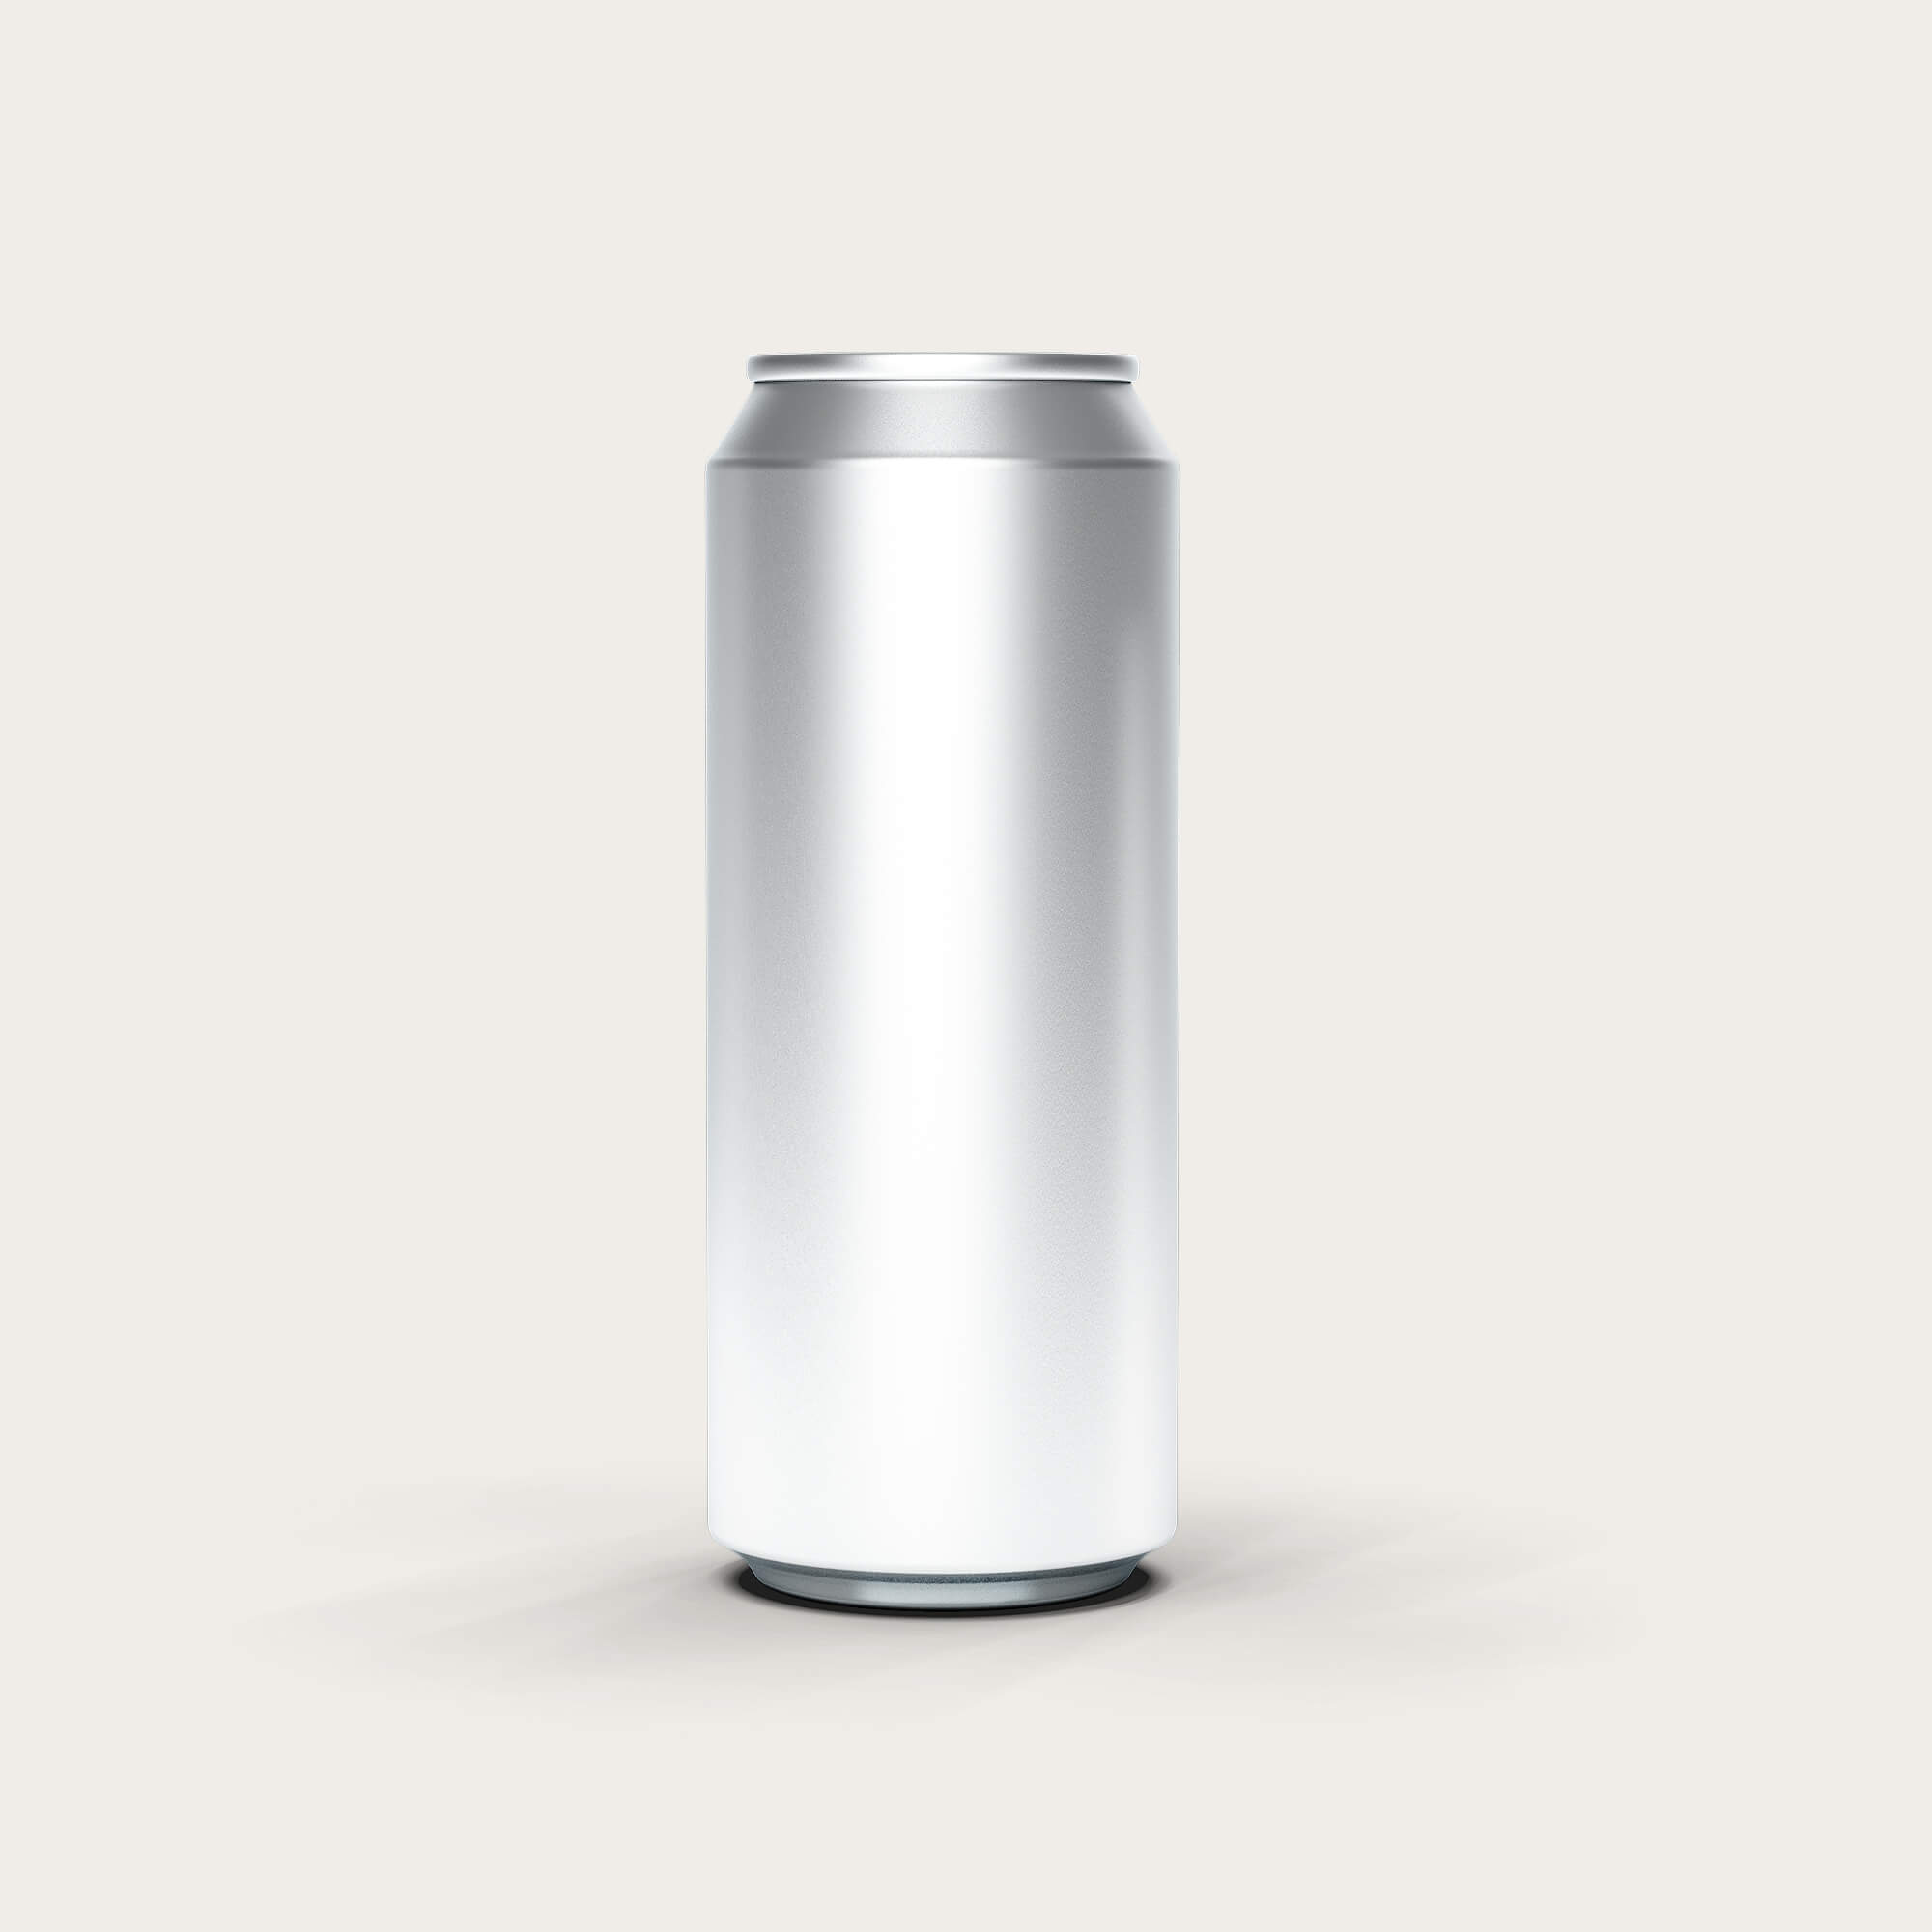 Blank Free Energy Drink Can Mockup PSD Template